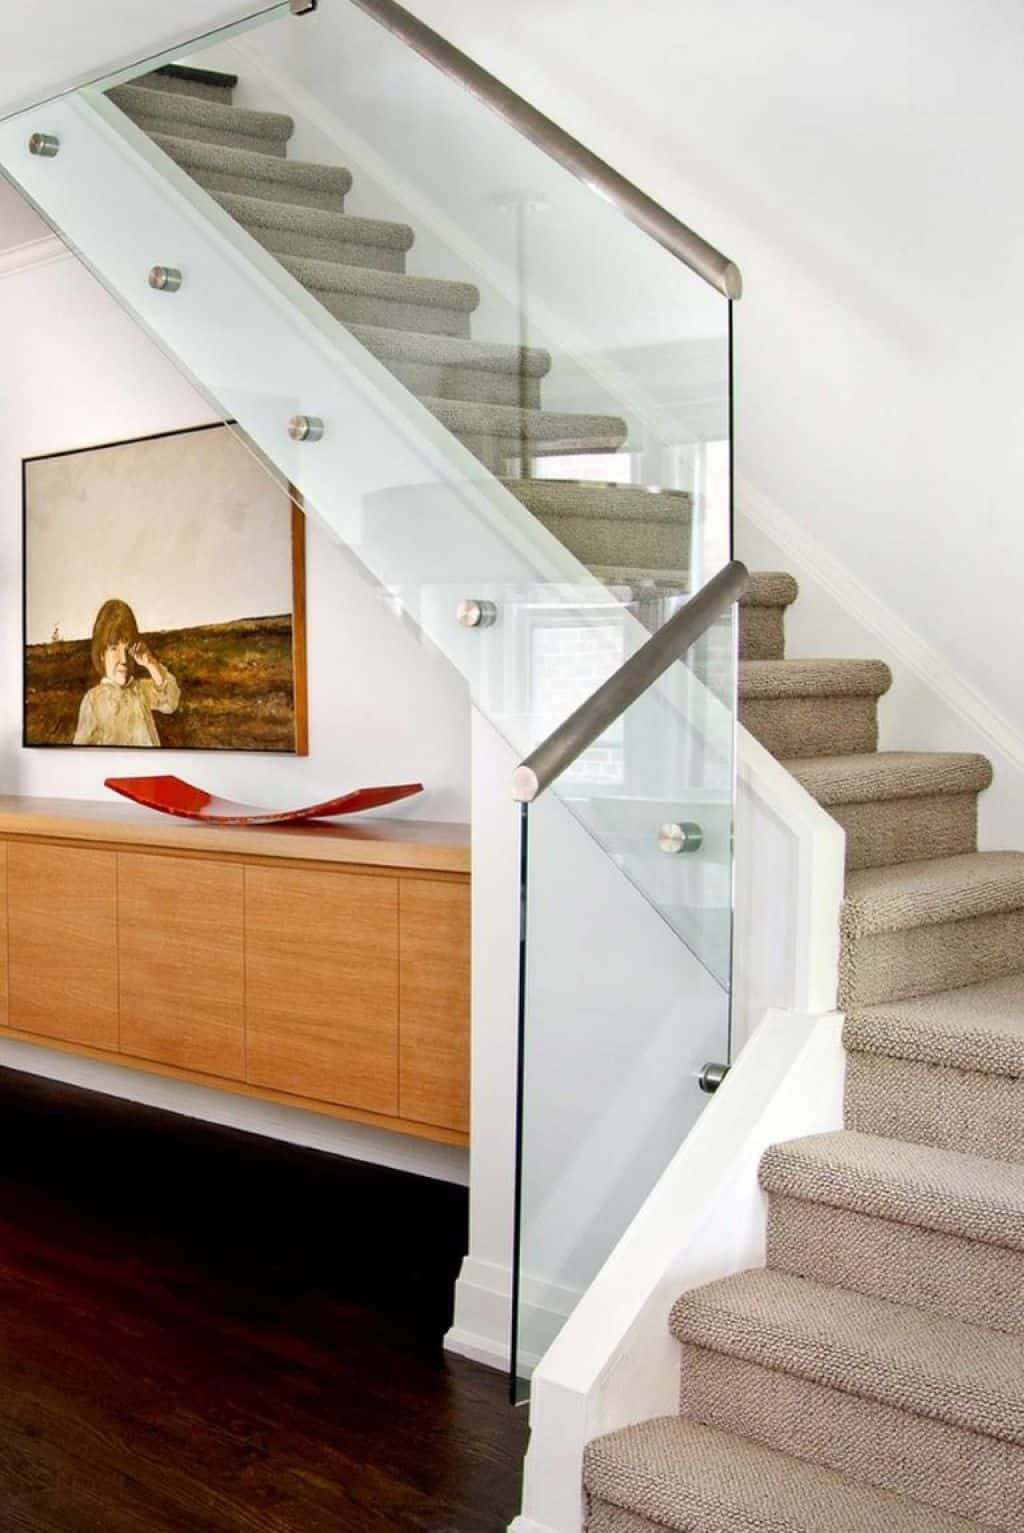 Fascinating Glass And Steel Staircase Railing Of Modern E With | Modern Stainless Steel Staircase Railing | Modular Steel | Hand | Crystal Handrail | Contemporary | Exterior